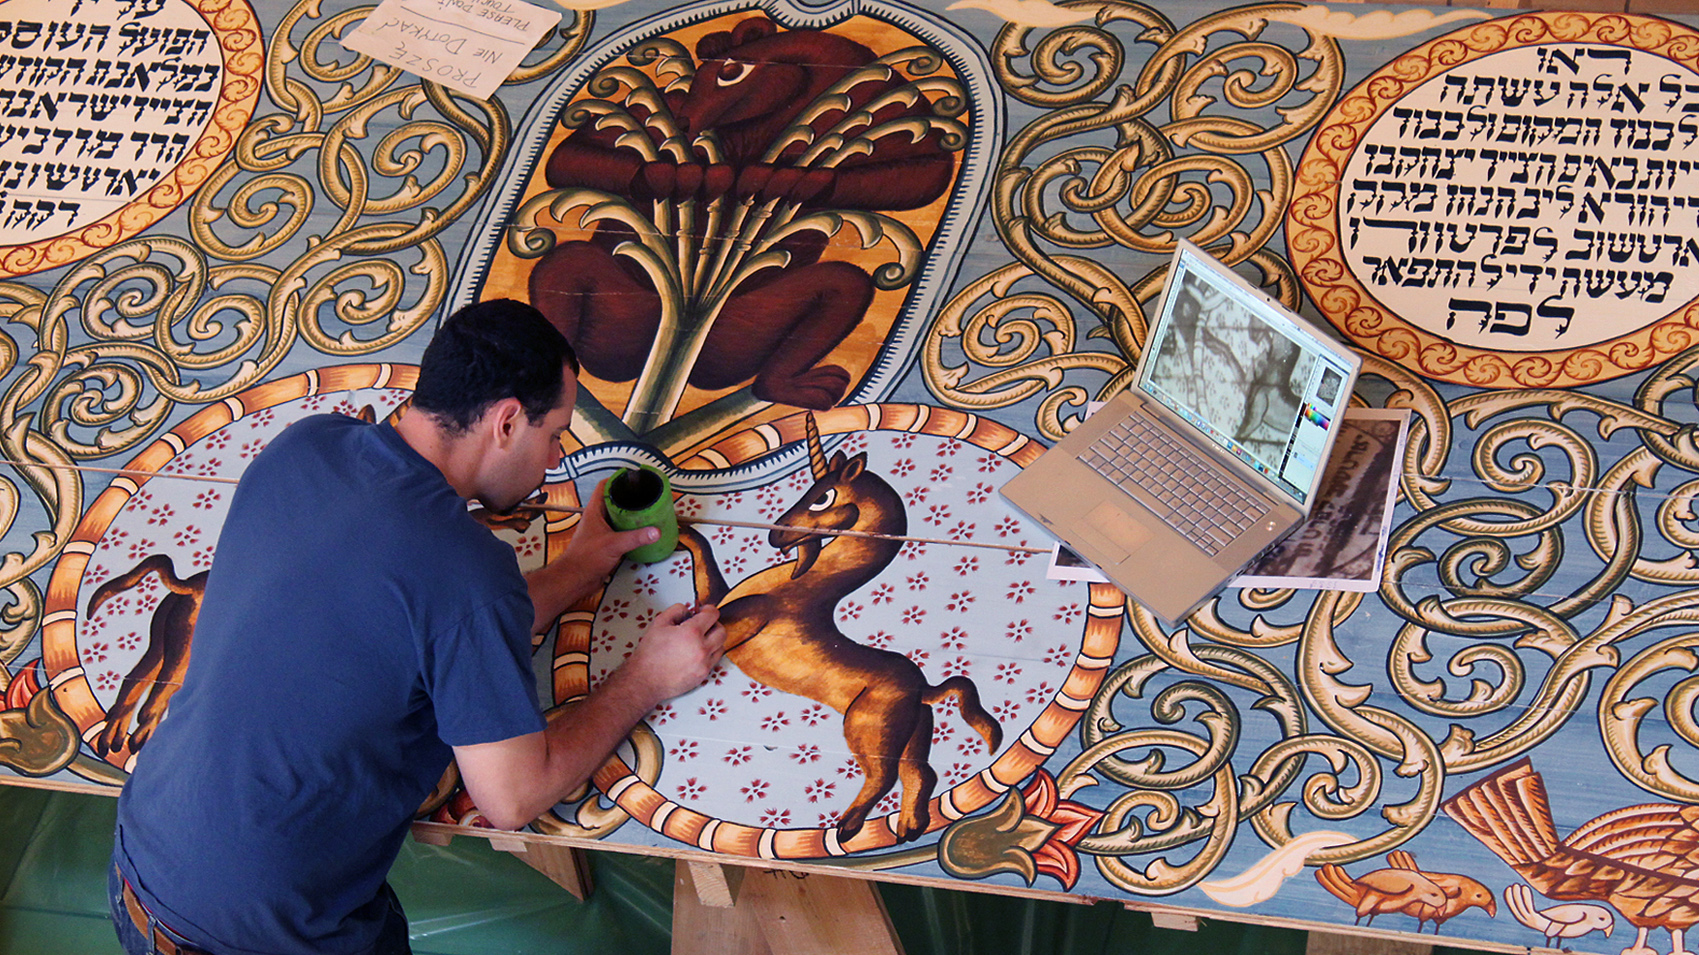 Jason Loik painting the unicorn on one of the Gwoździec ceiling panels.